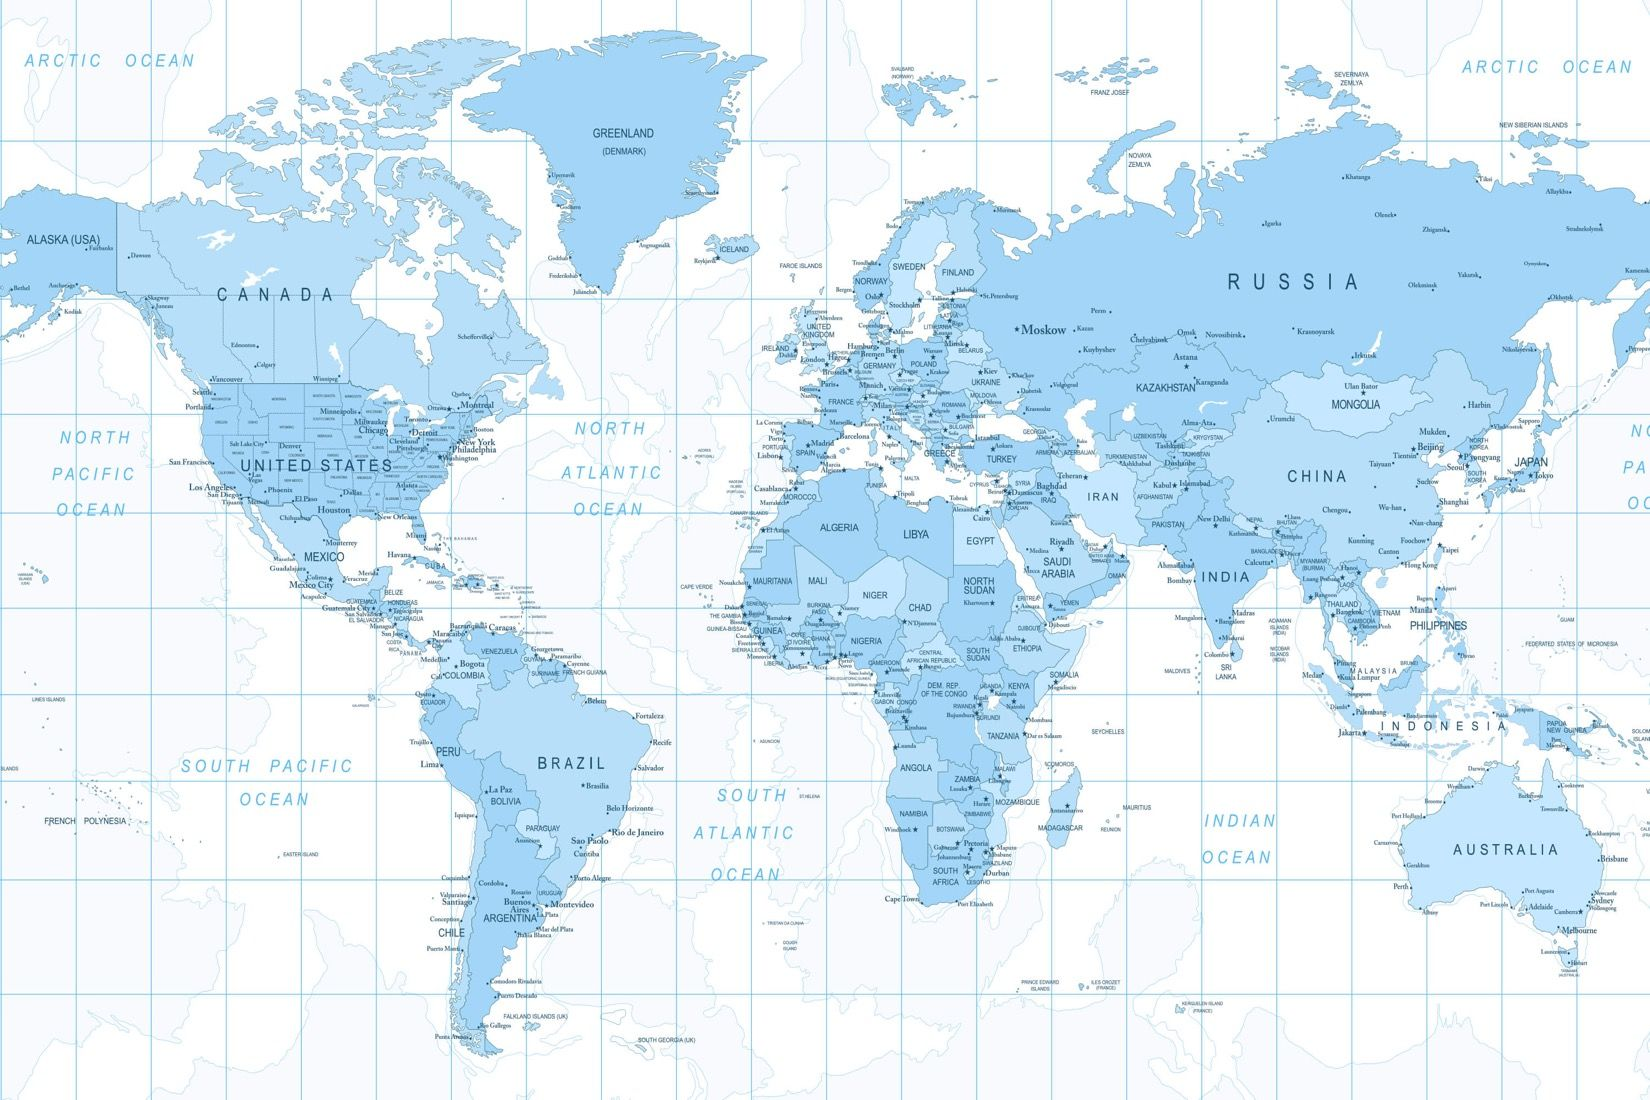 Blue detailed world map wall mural muralswallpaper design quality blue detailed world map mural custom made to suit your wall size by the uks no1 murals custom design service and express delivery available gumiabroncs Choice Image